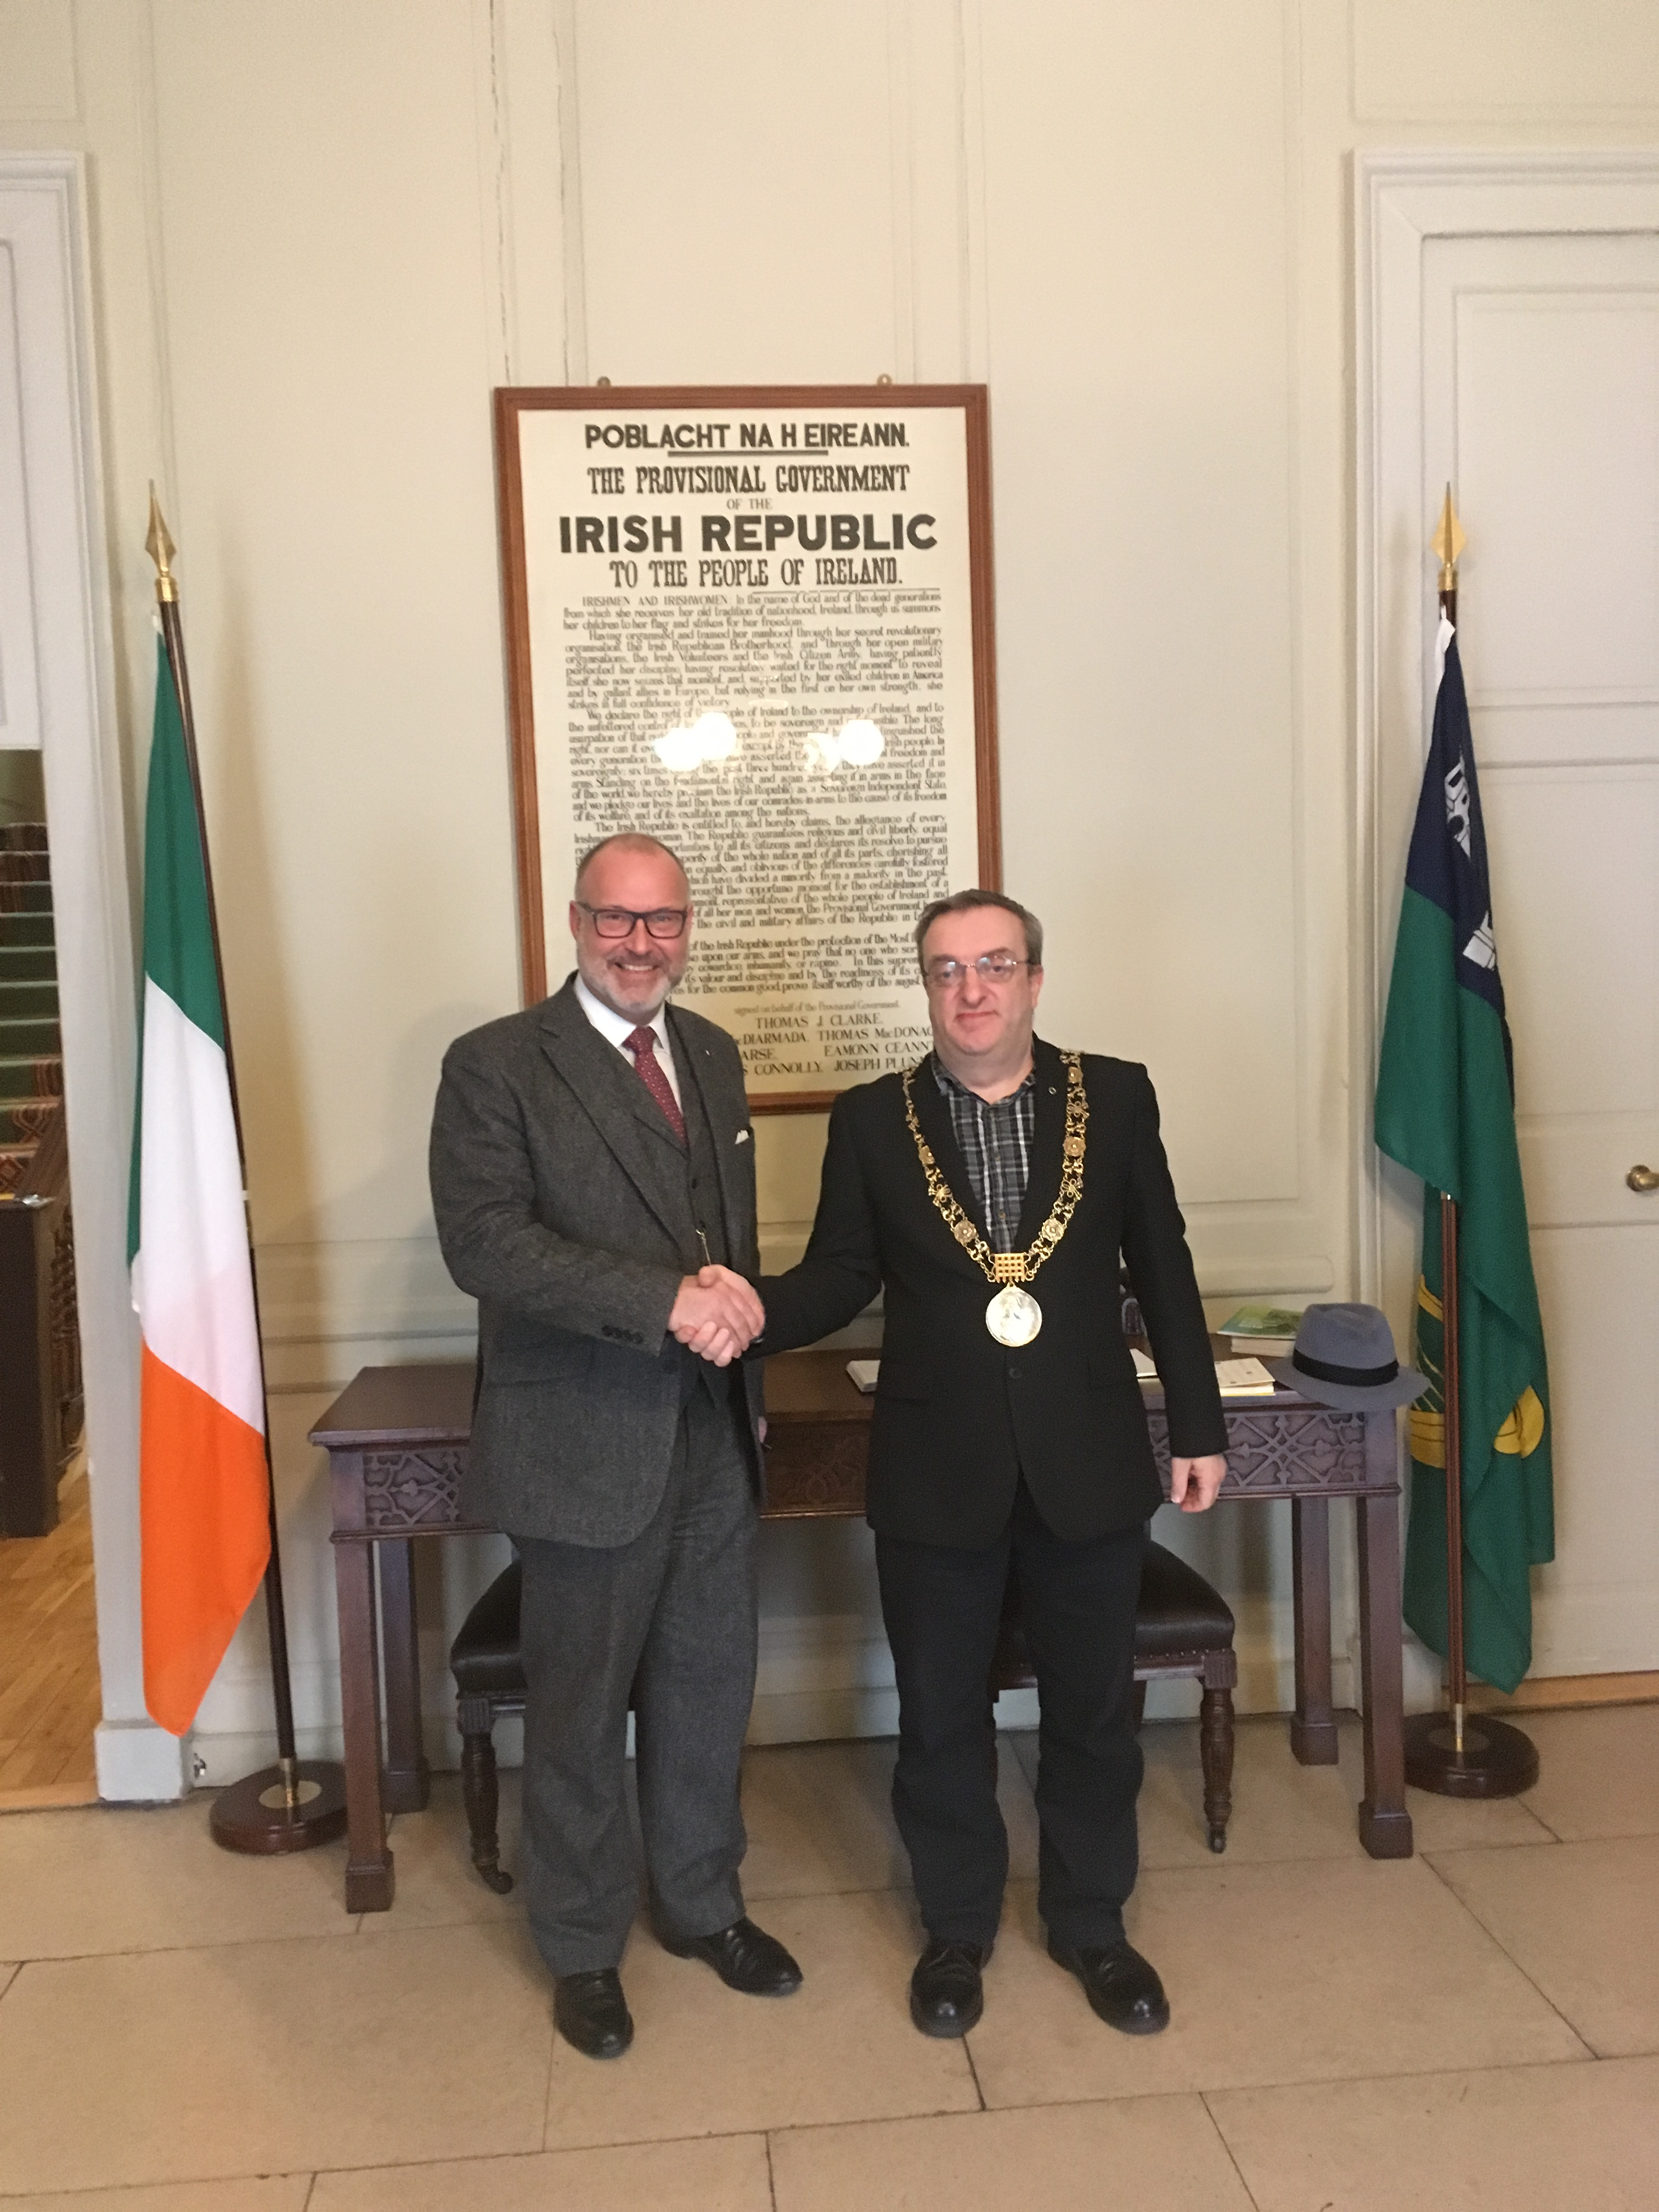 Lord Mayor Dublin